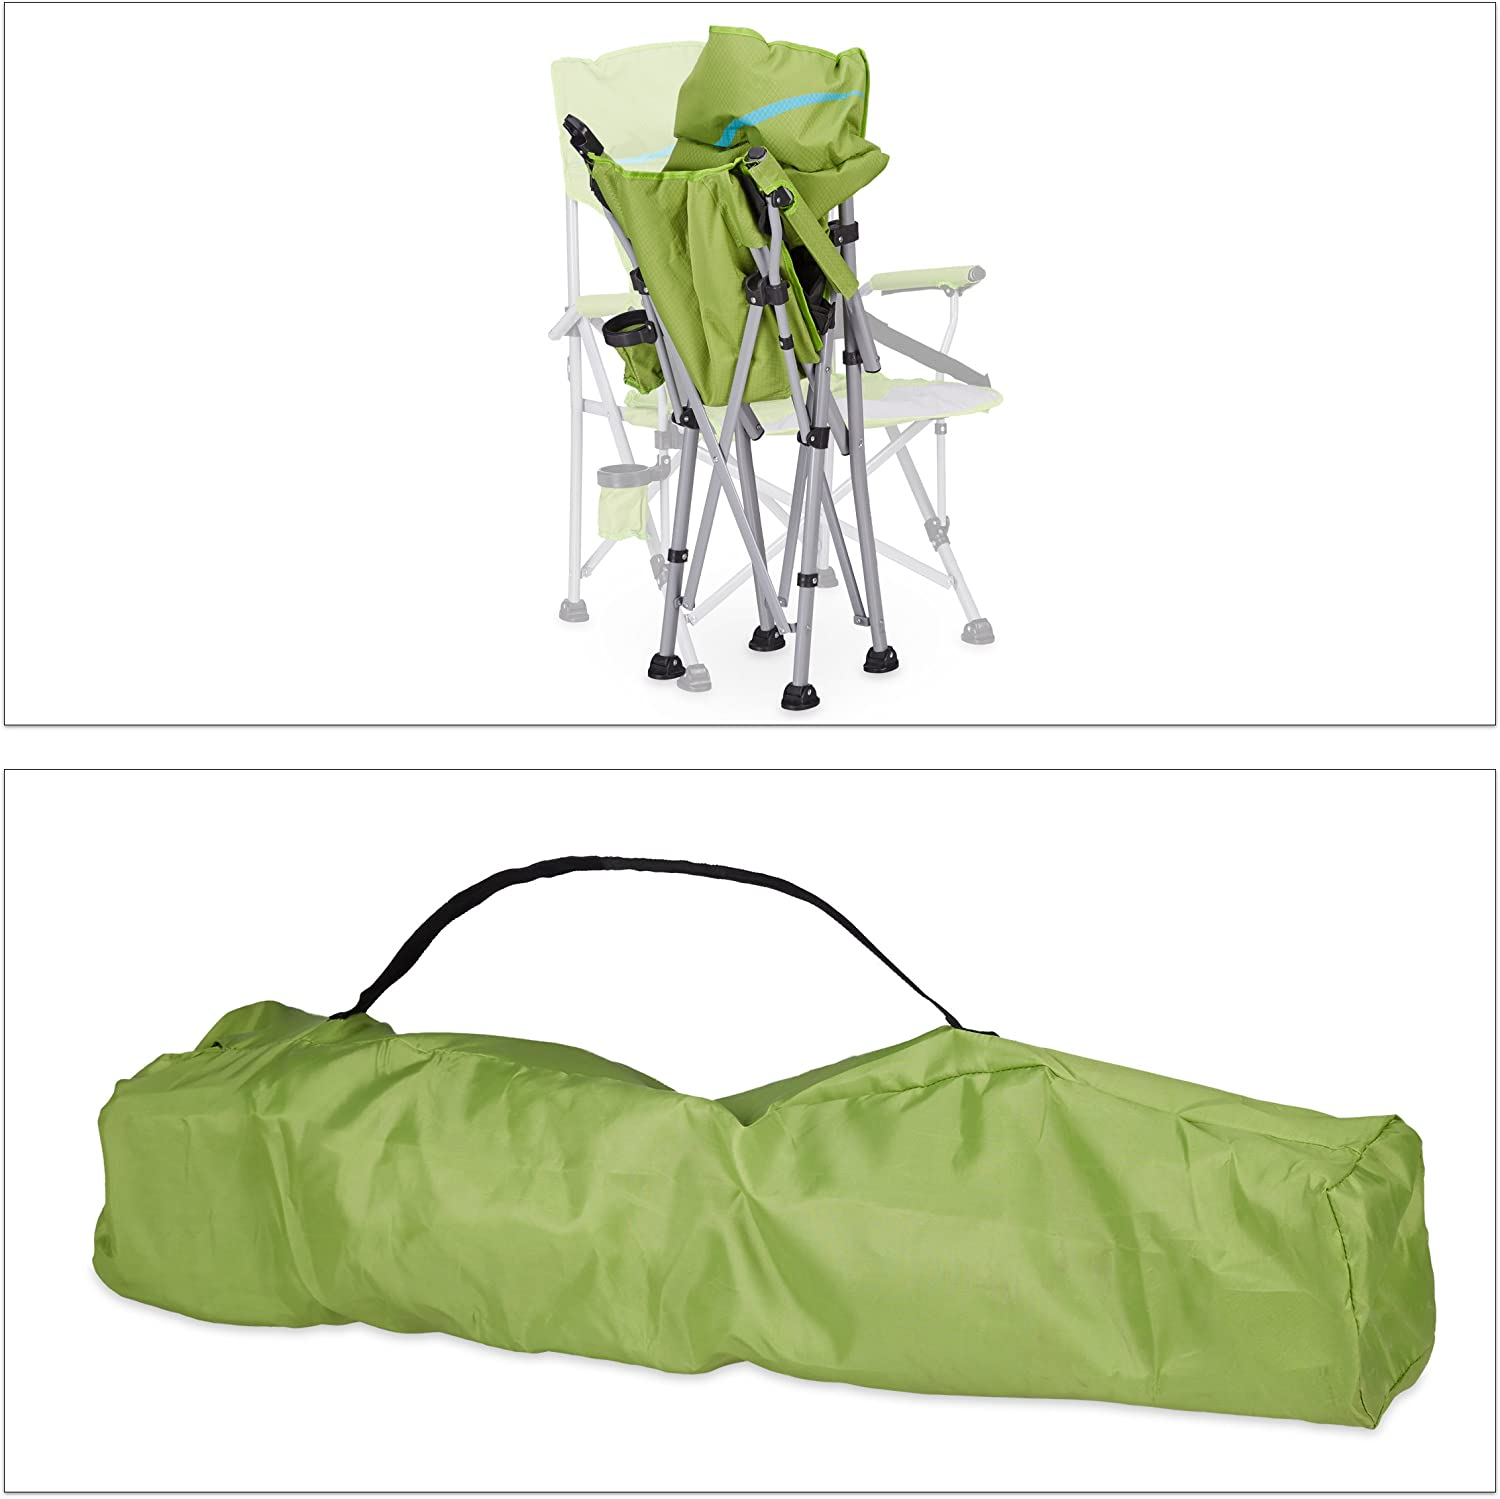 H x W x D: 102 x 66 x 61 cm Foldable Fishing Seat Bottle Holder Relaxdays Folding Camping Chair Green